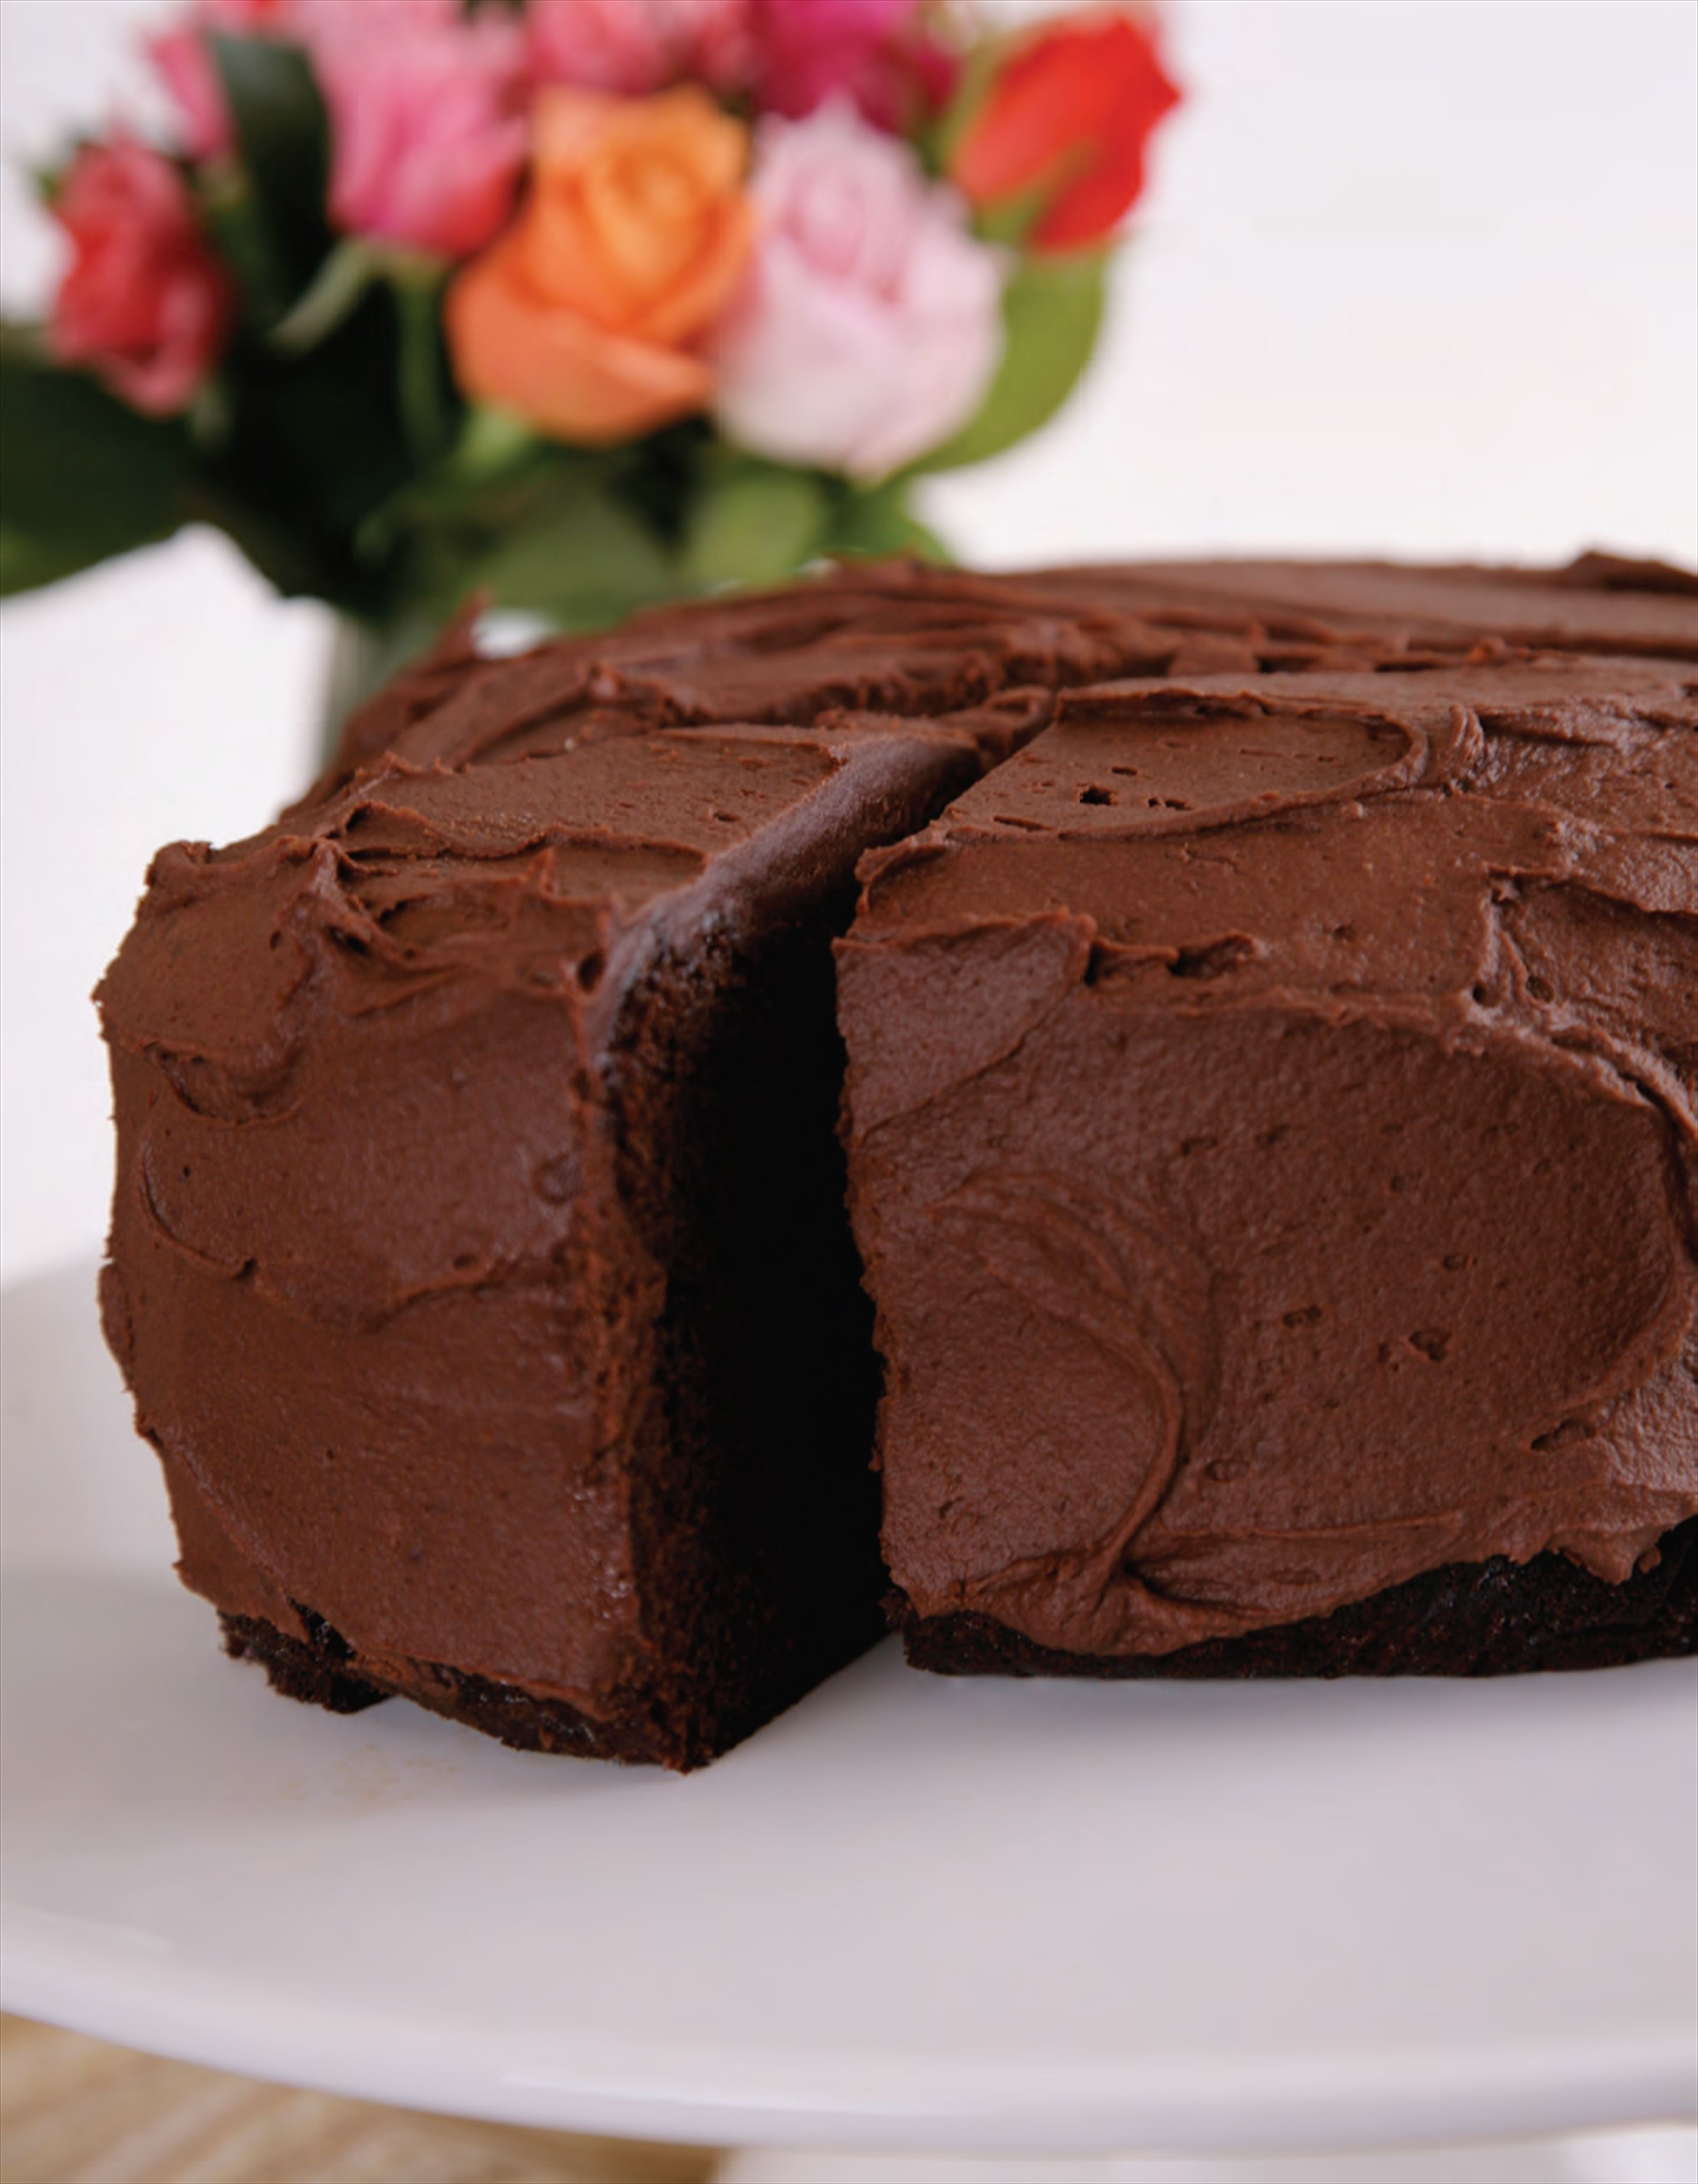 Natalie's moist chocolate cake